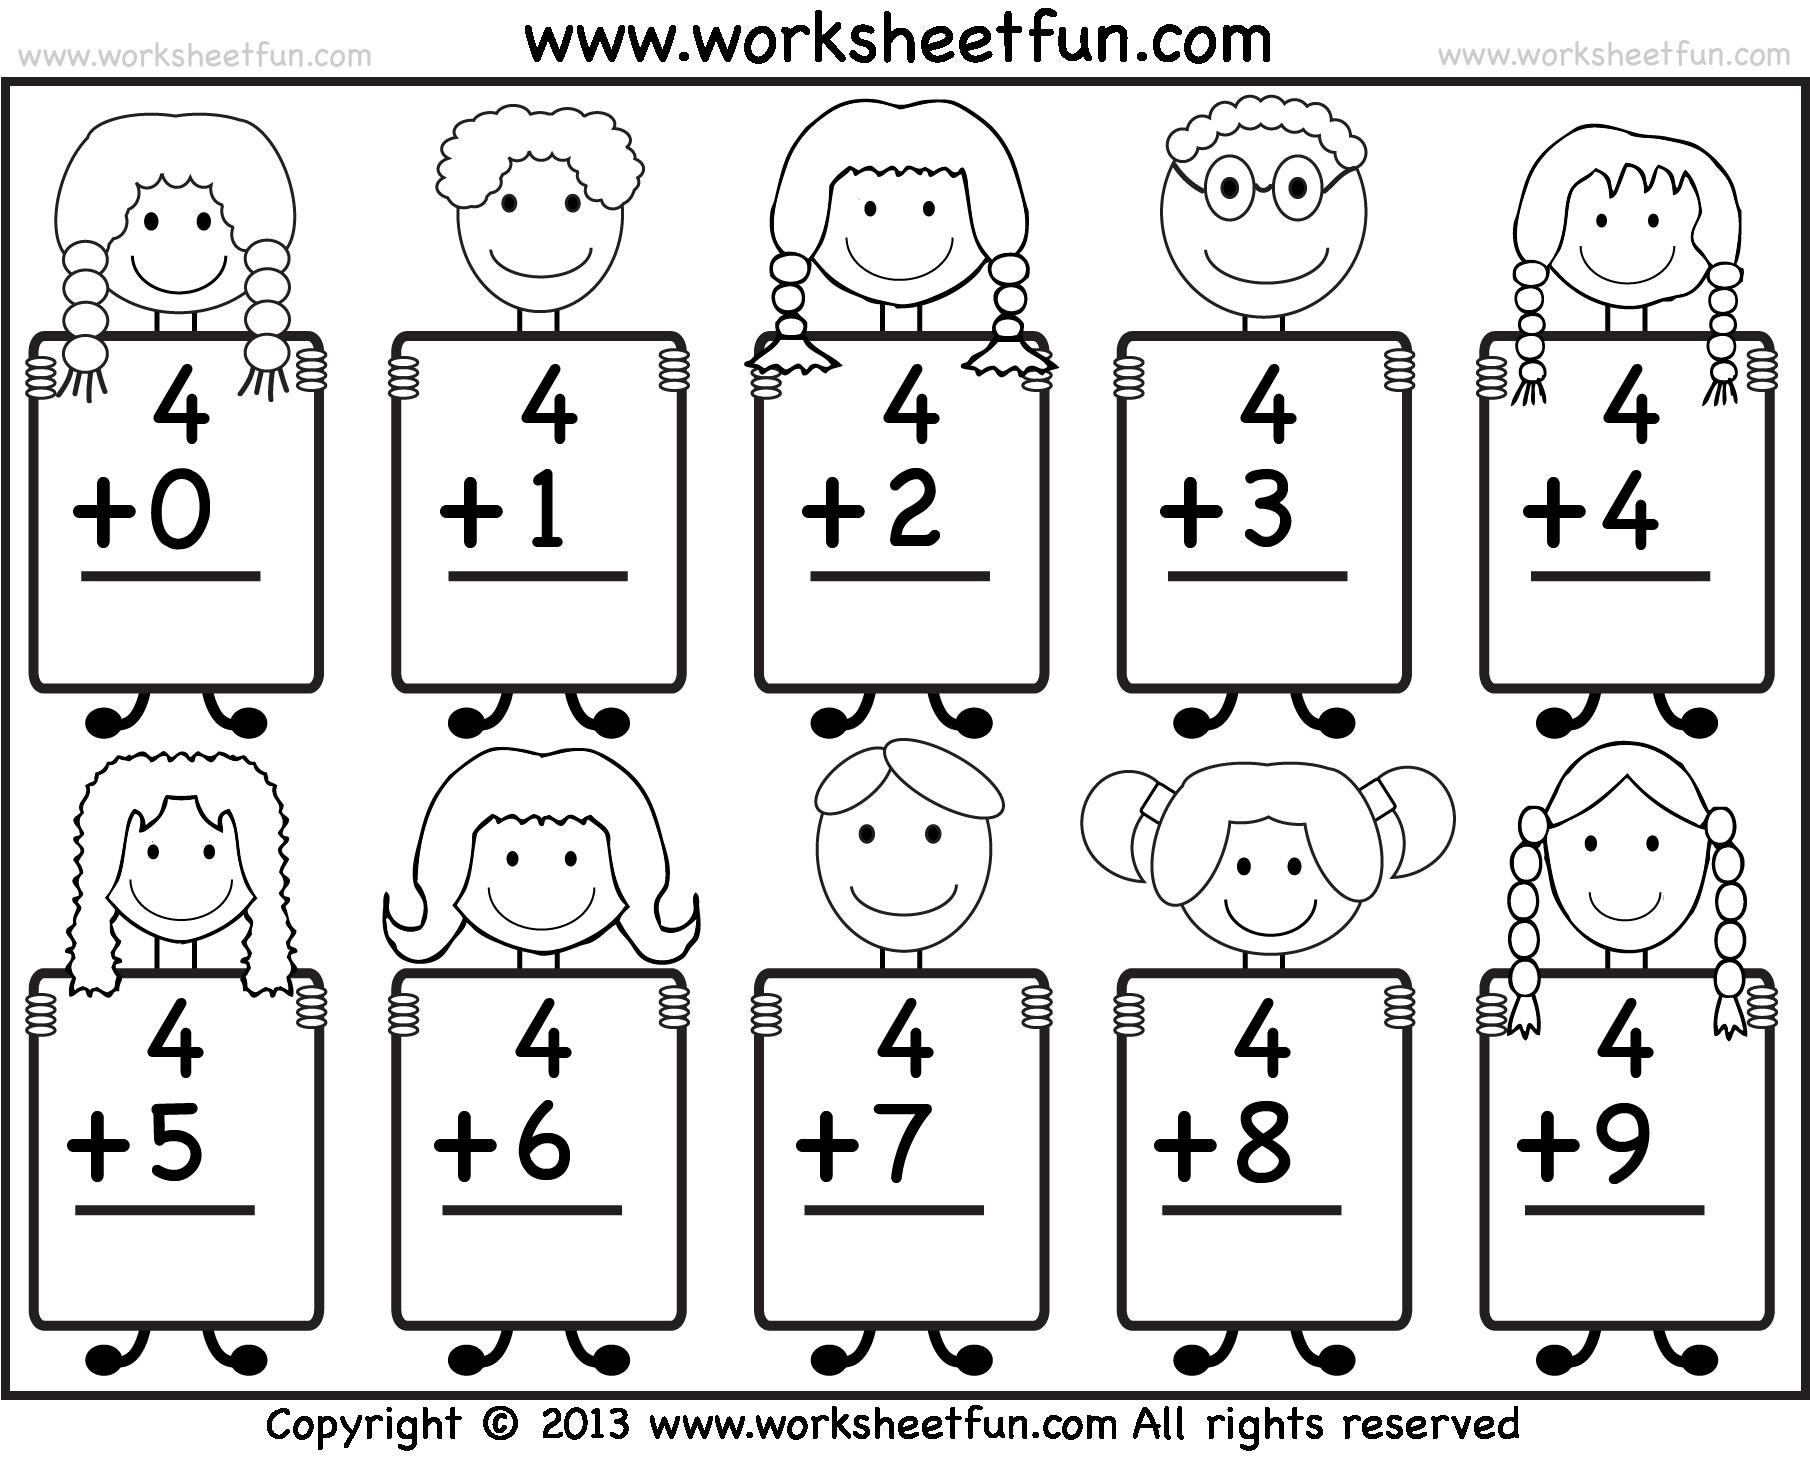 freeprintablemathworksheetsforkindergartenaddition1png – Kindergarten Math Addition Worksheets